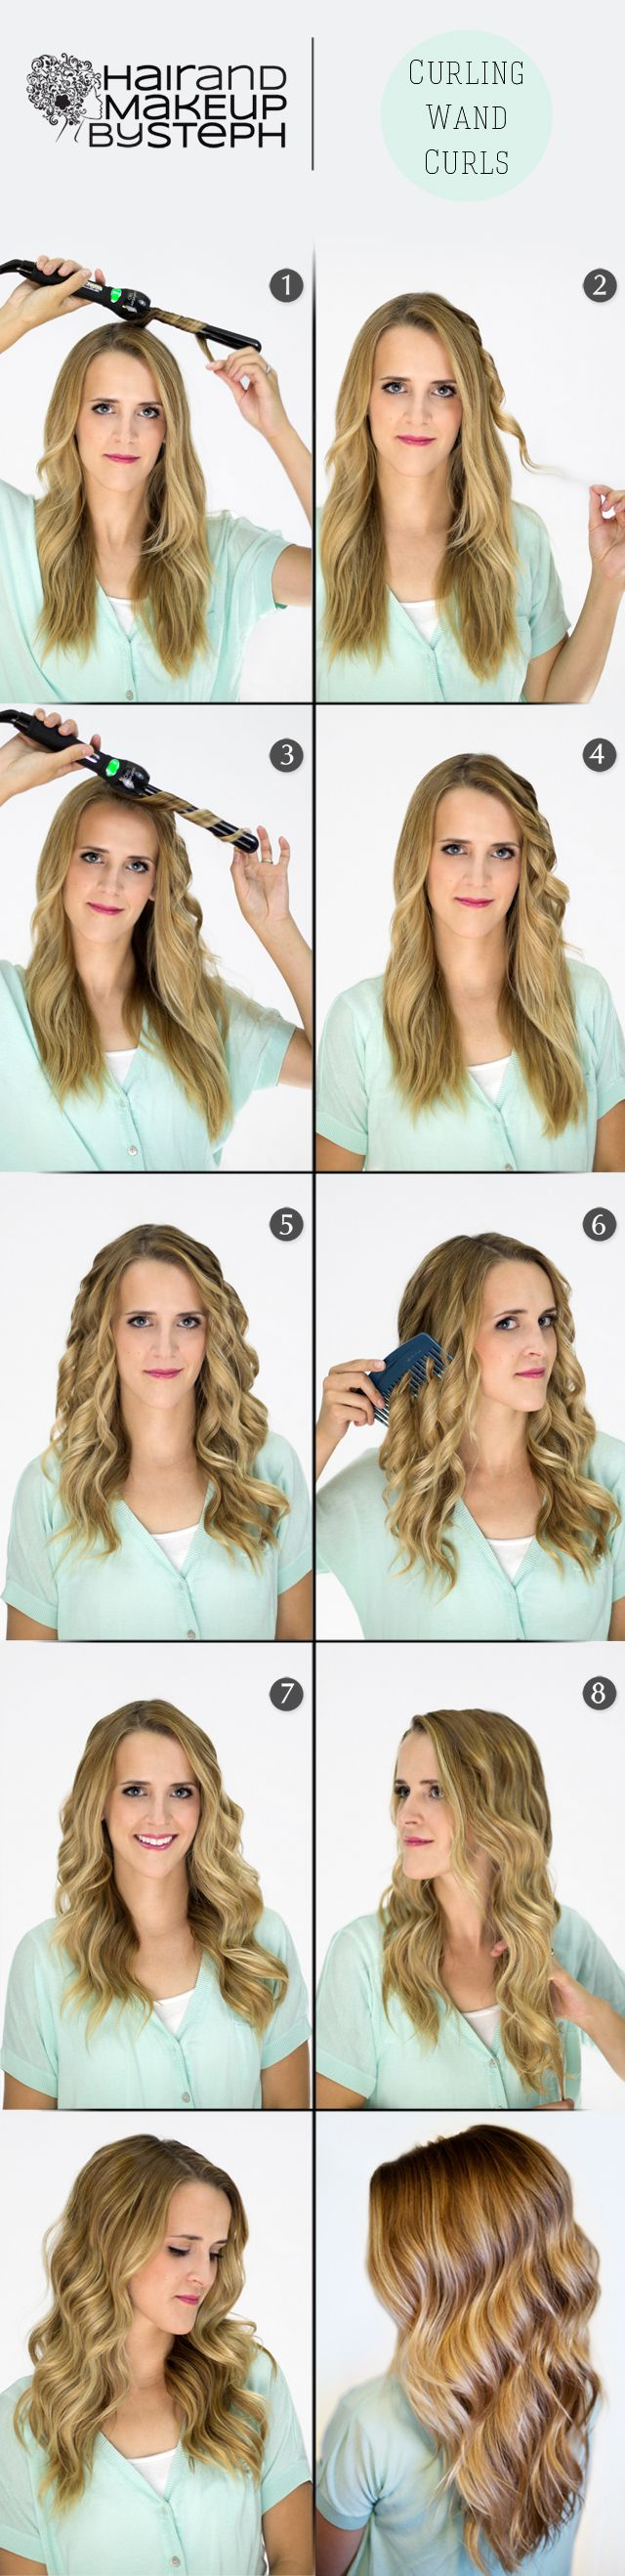 Awe Inspiring 1000 Ideas About Curling Wand Waves On Pinterest Curling Hair Hairstyles For Women Draintrainus